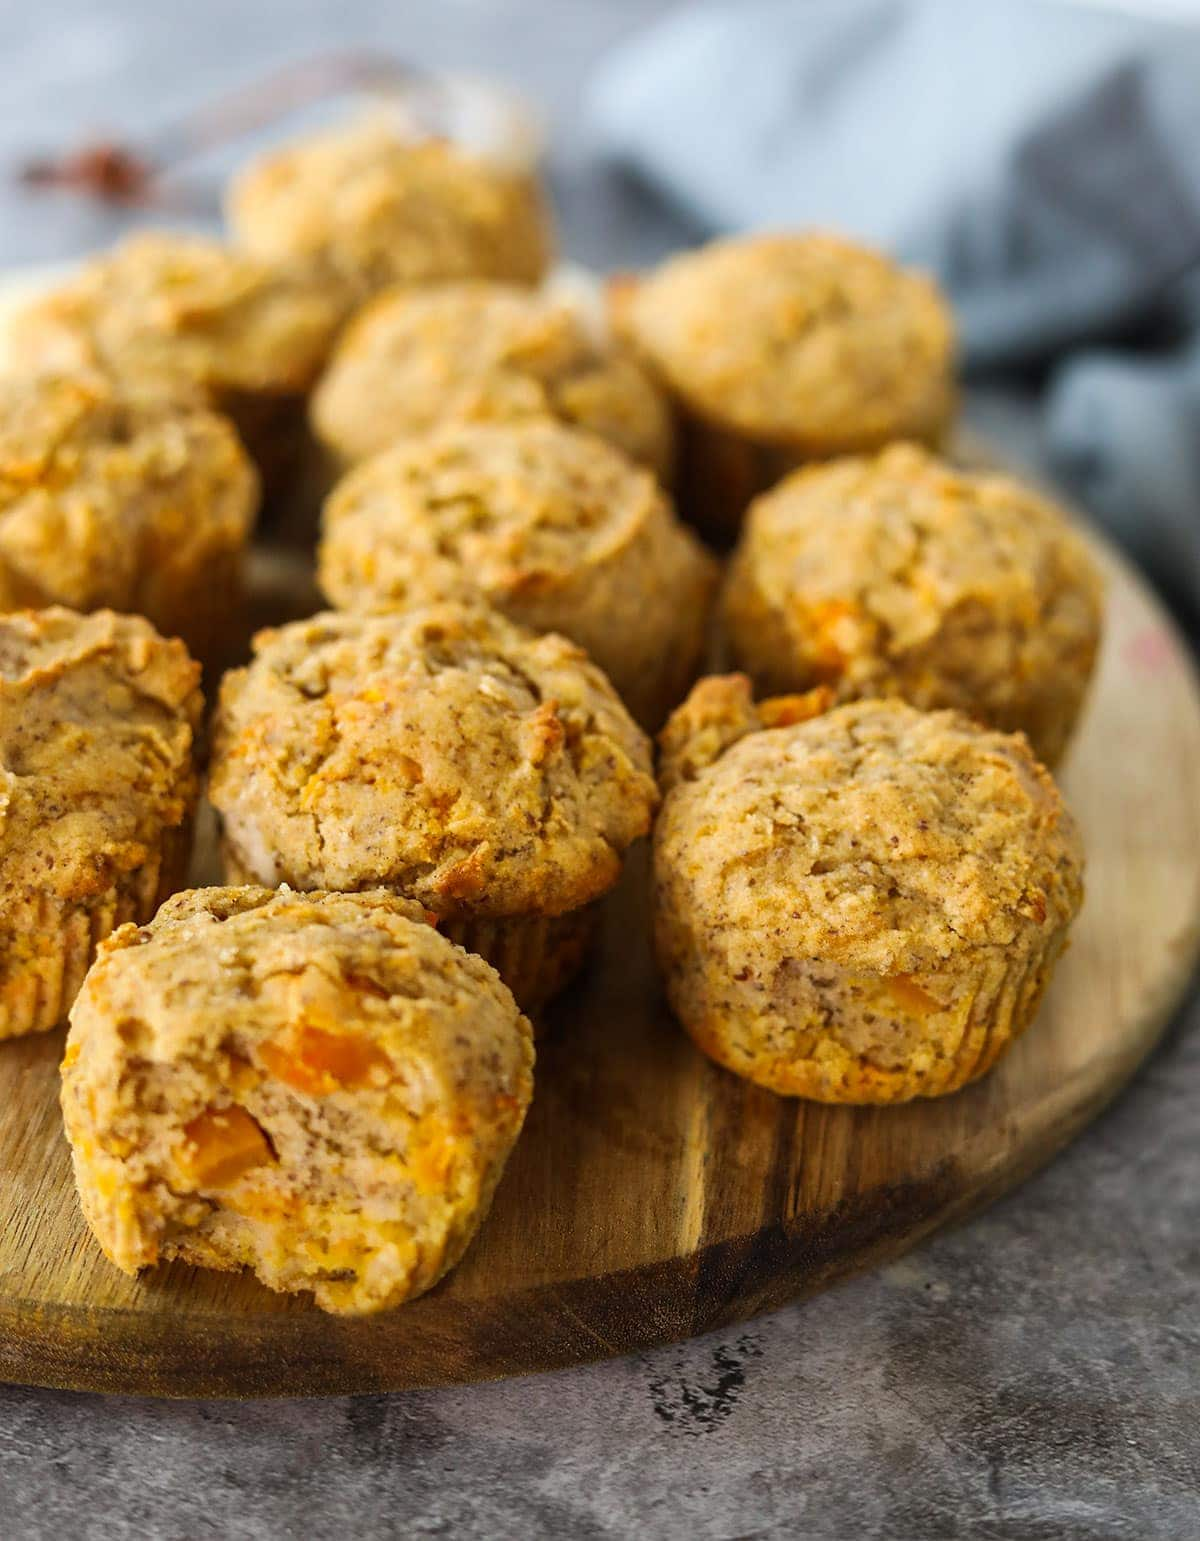 Gluten-free vegan butternut quash muffins on a round cutting board on a grey concrete with a grey apron